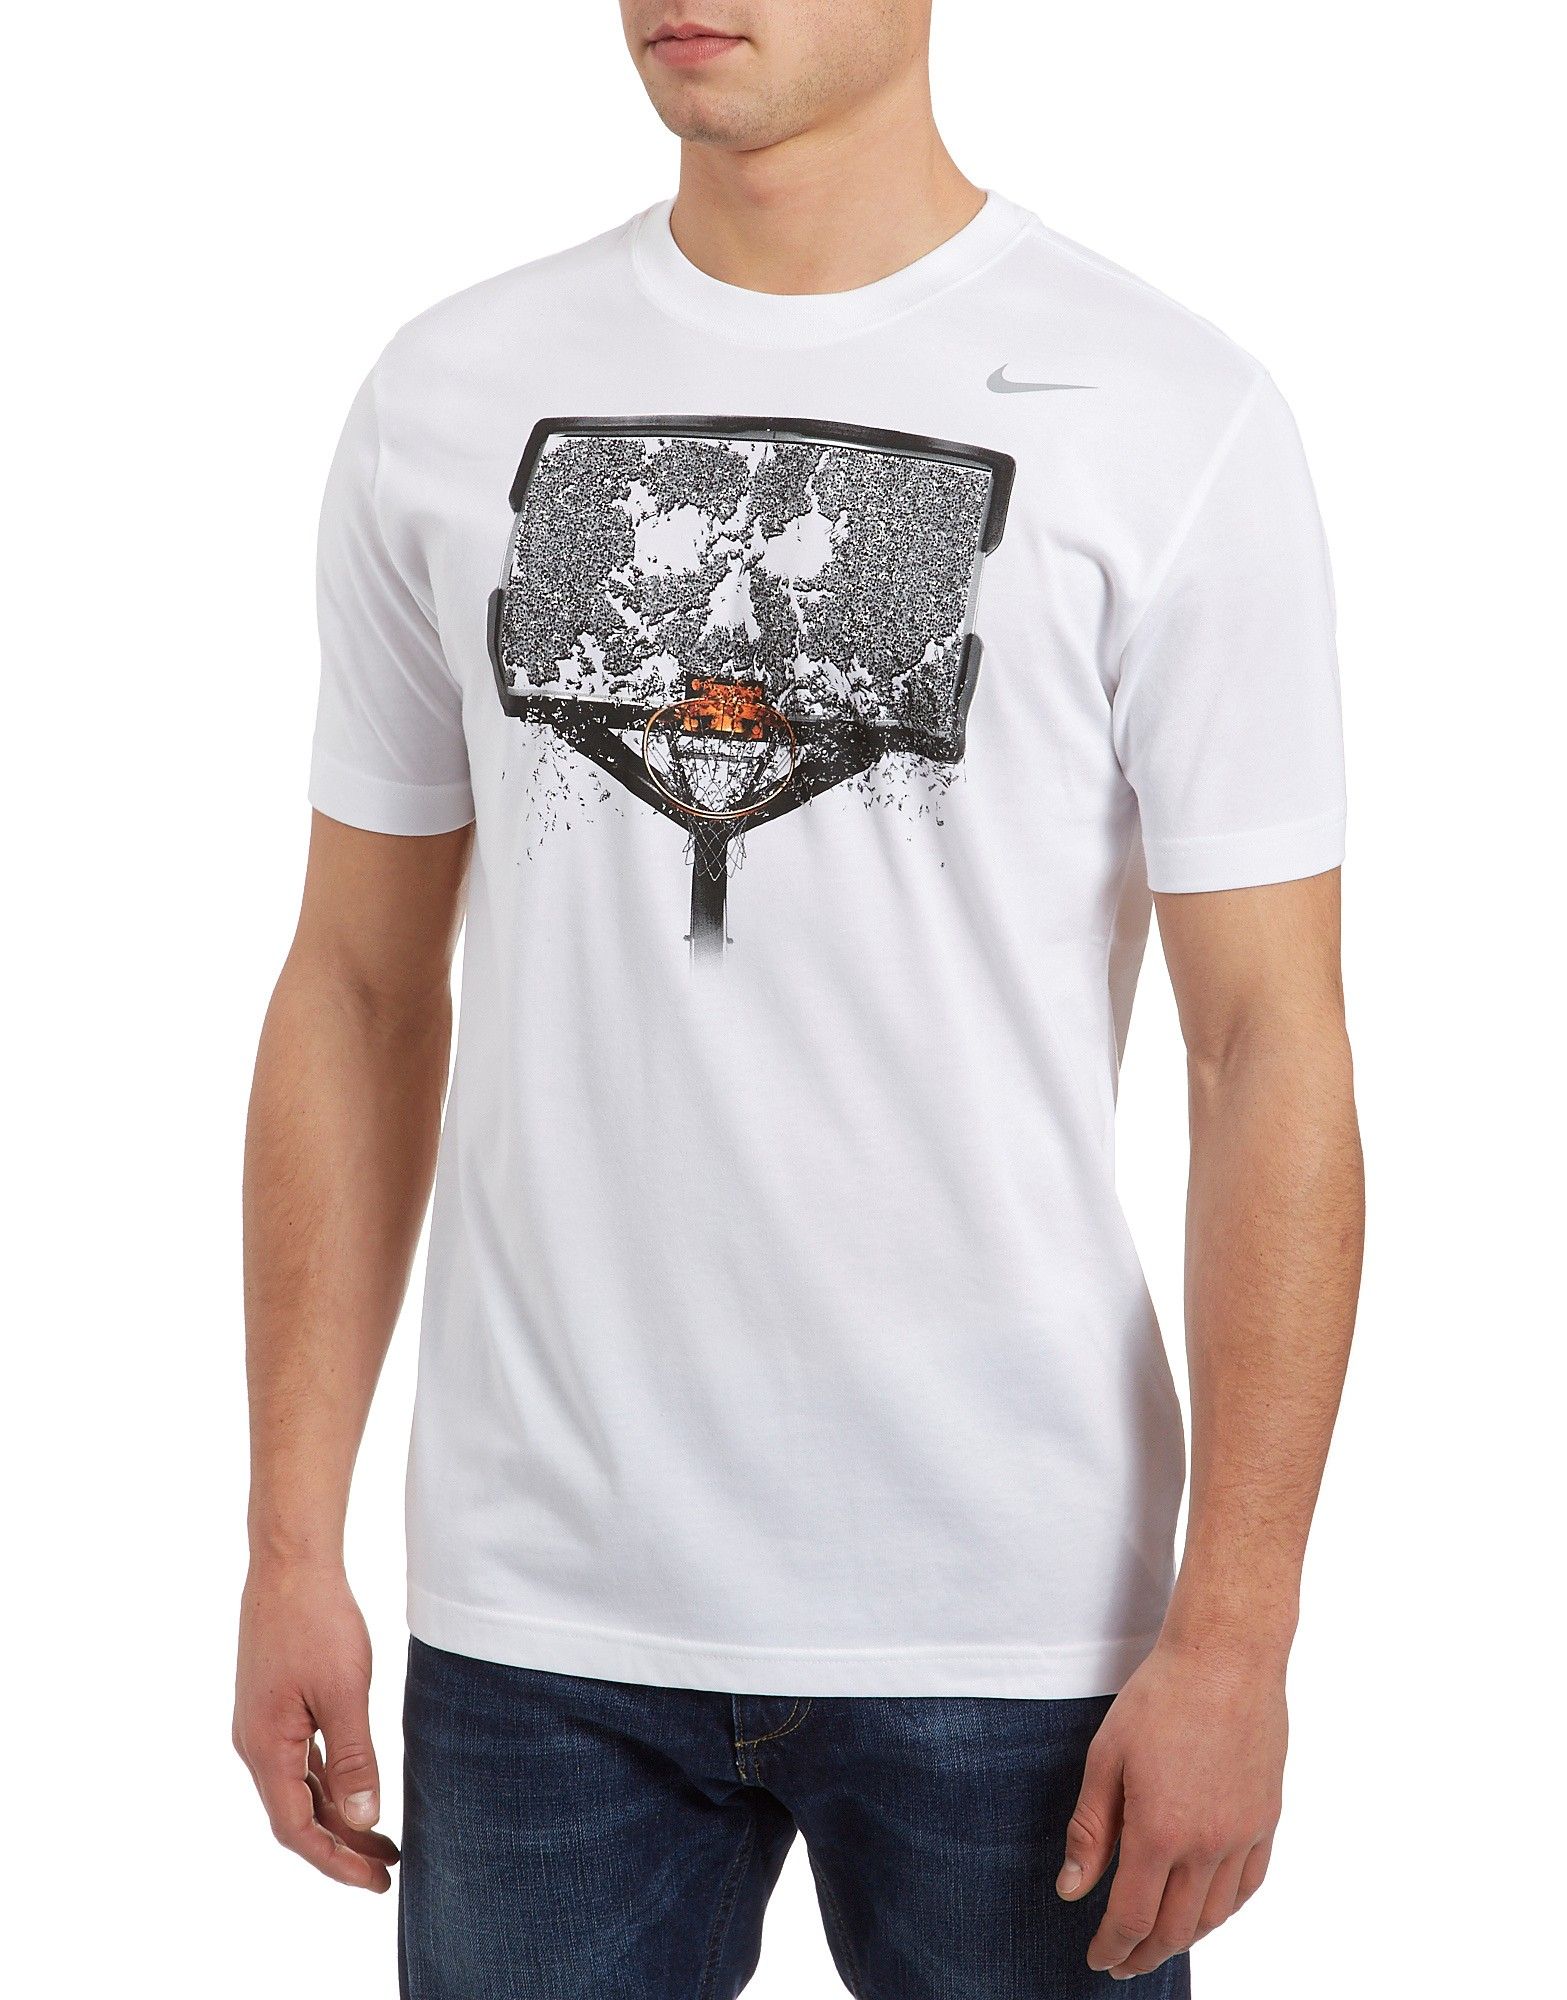 Nike Deadly Dunk T-Shirt product image